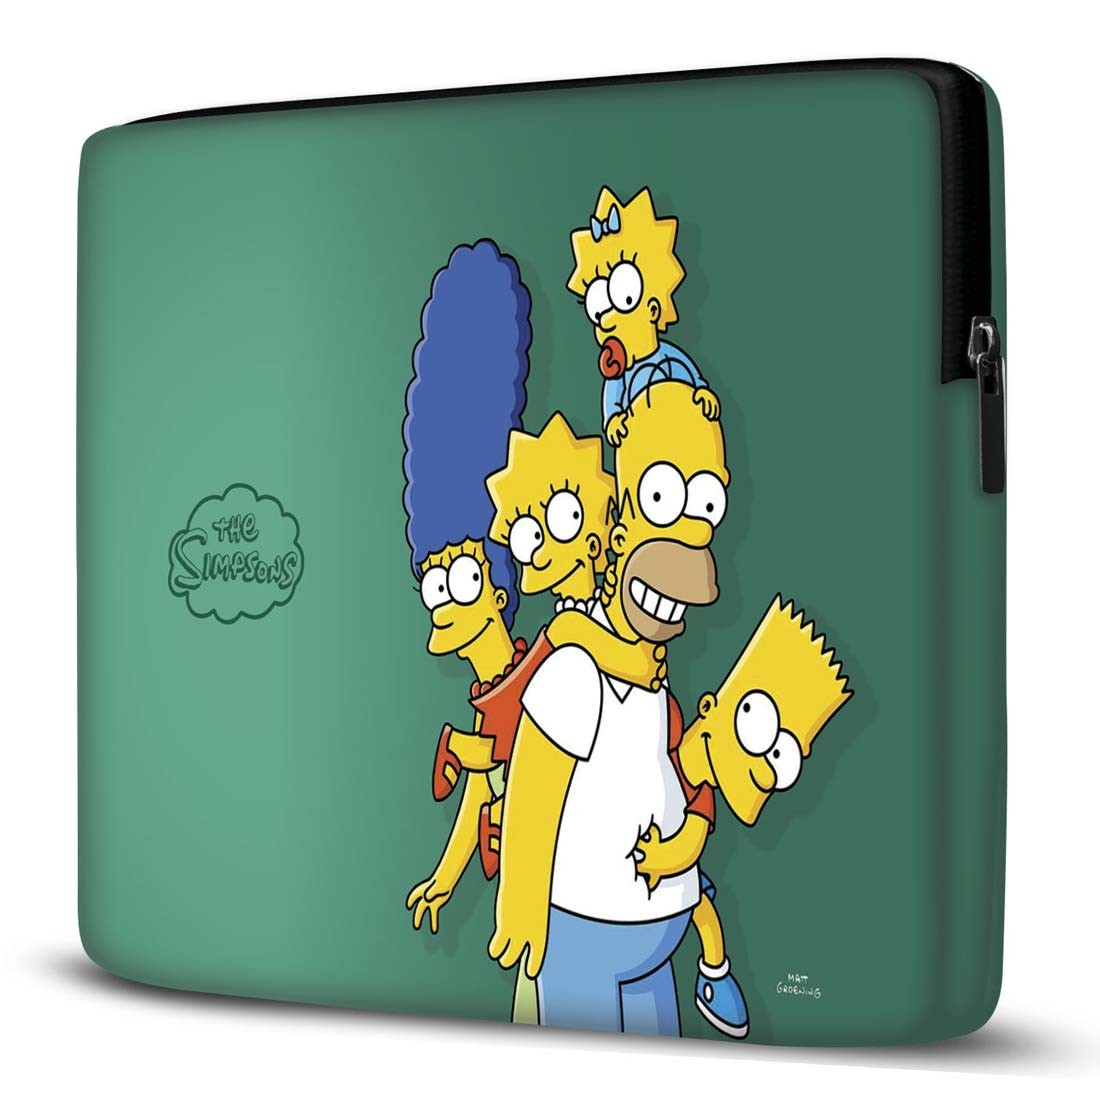 Capa para Notebook Simpsons Verde 15.6 A 17 Polegadas